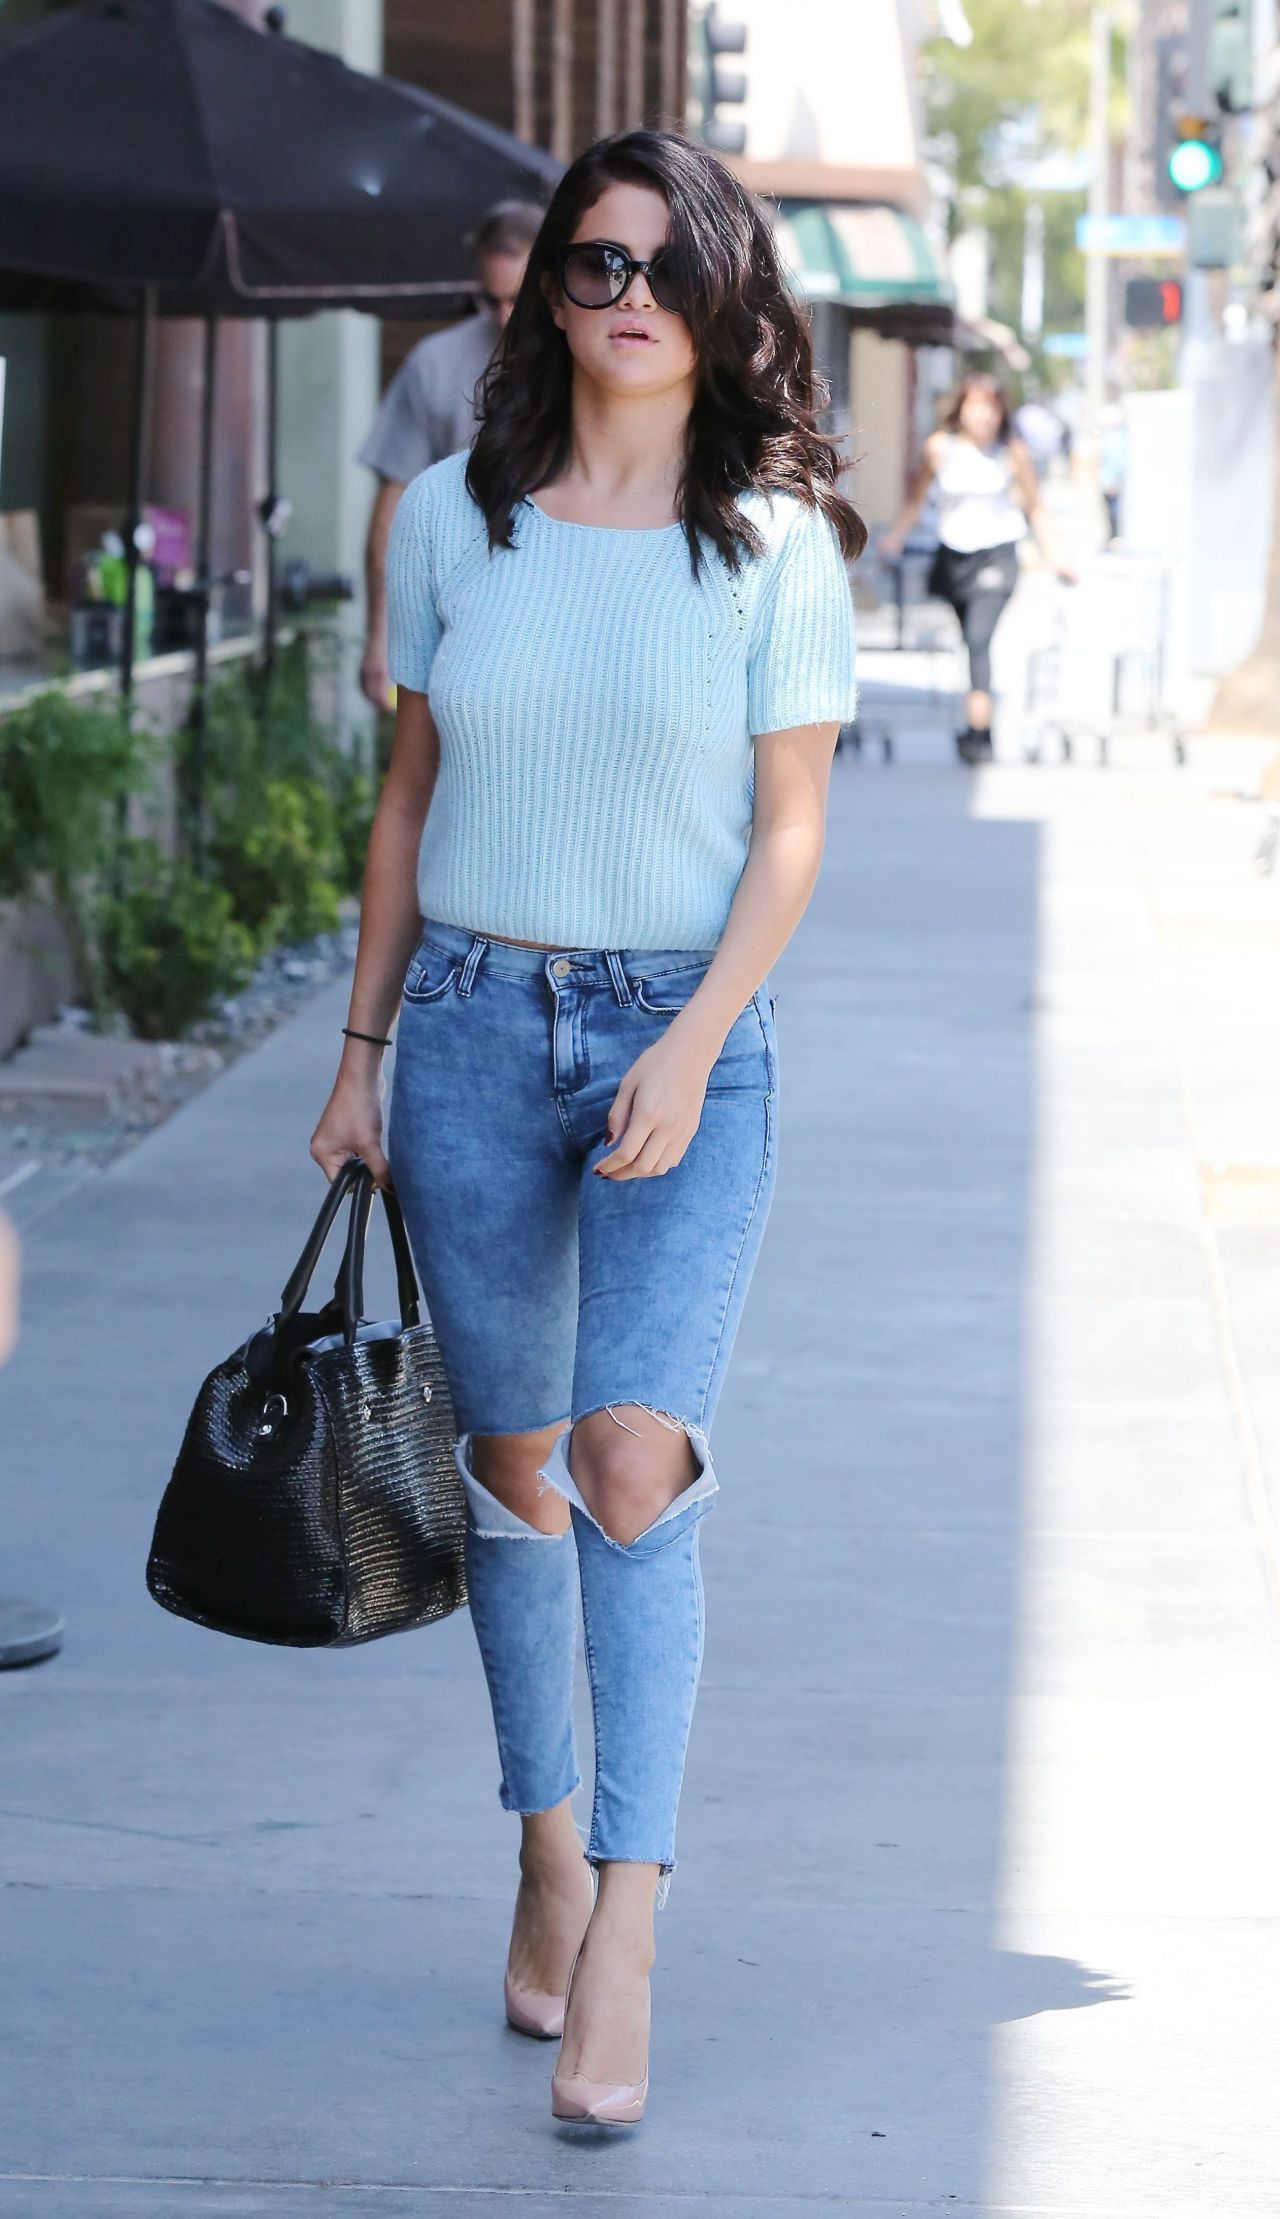 selena gomez in jeans - out in los angeles